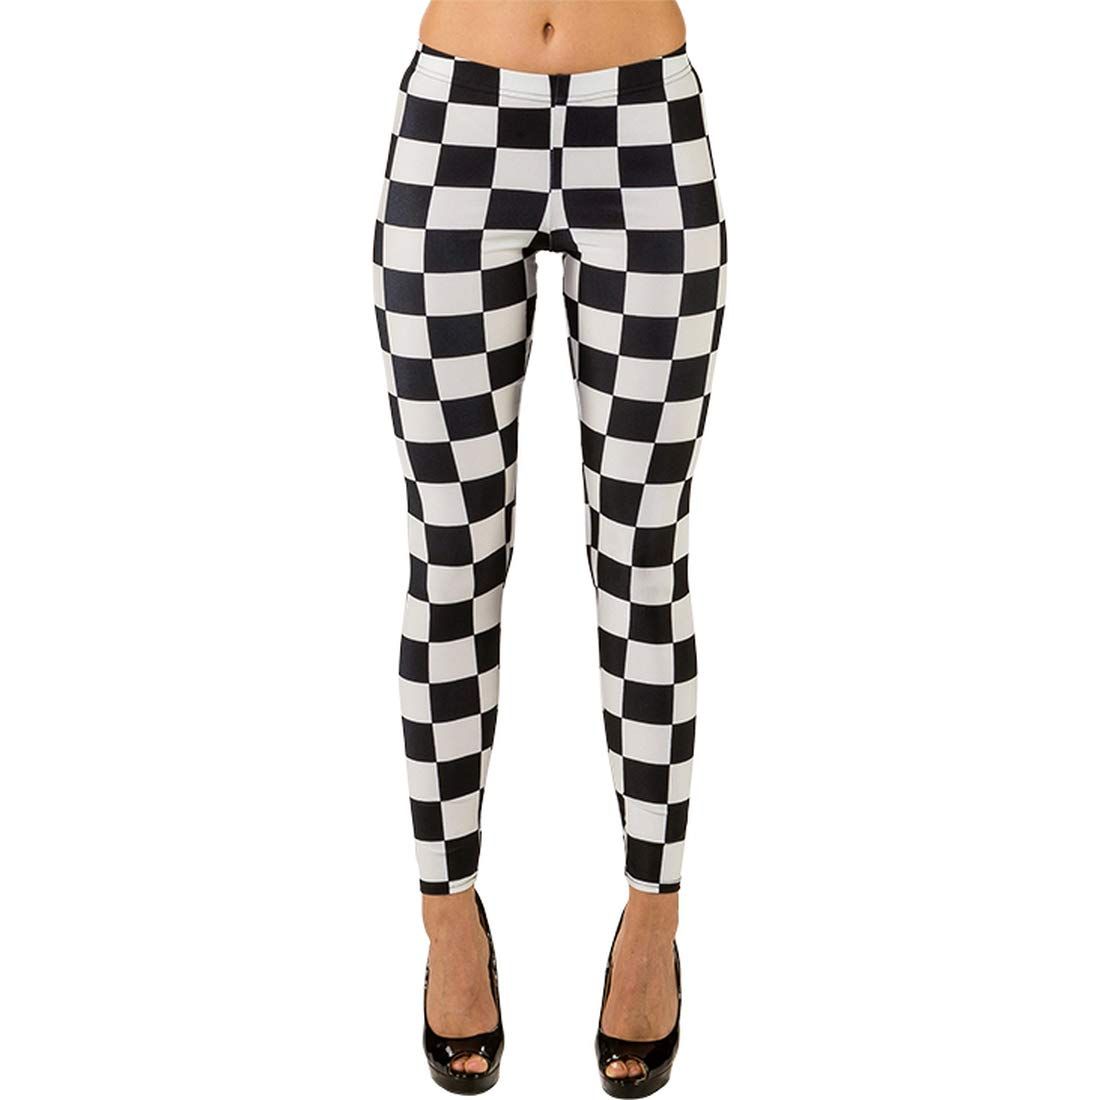 d03f5b6a027a3 NET TOYS Attractive Women's Leggings Chessboard Patterns | Black-White in  size S/M (UK 10-16) | Casual Women's Tights Check Pattern | Ideal for Theme  ...